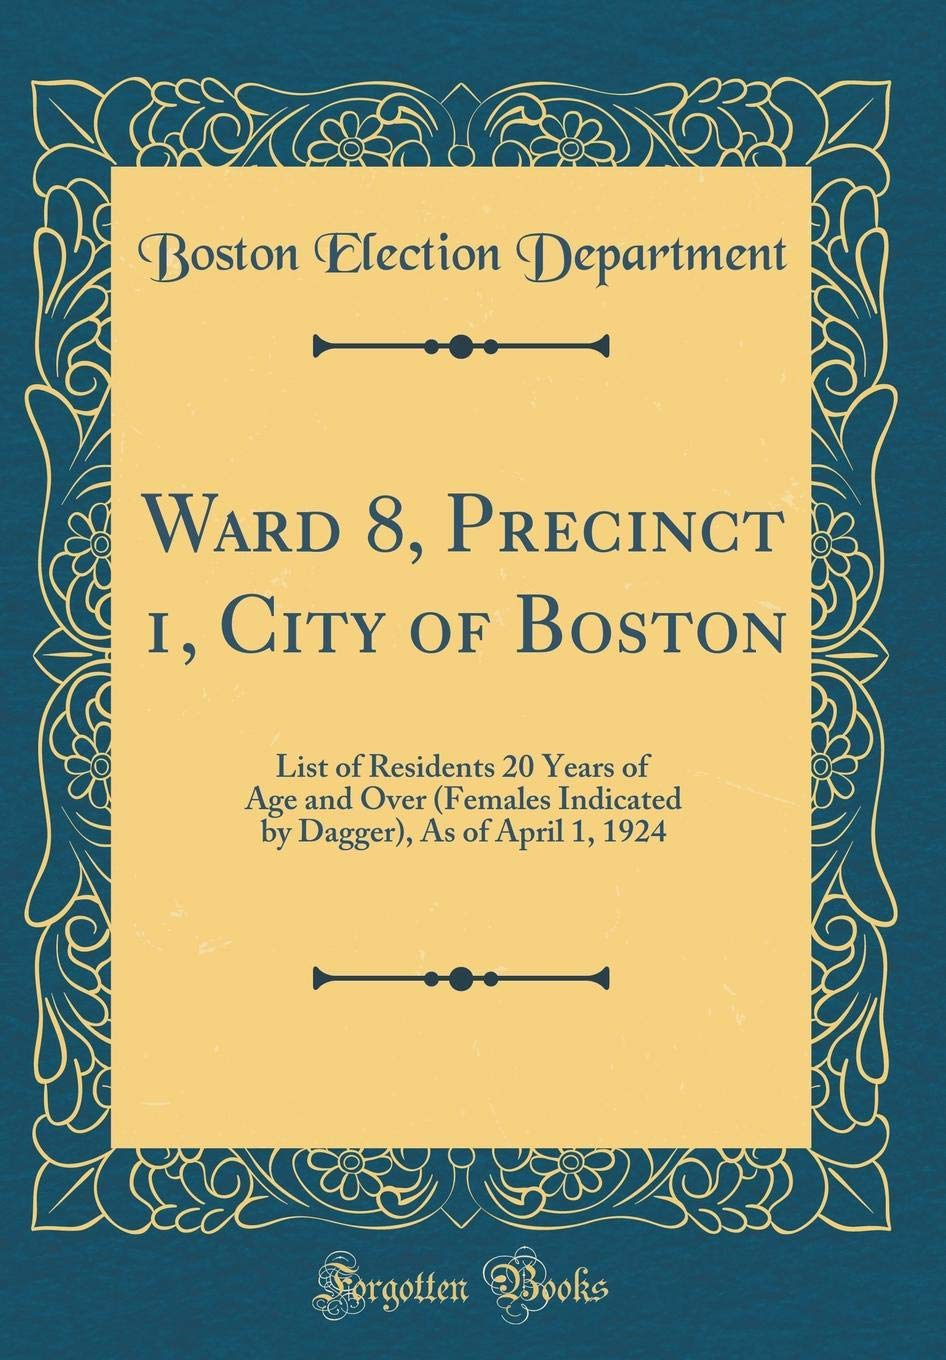 Download Ward 8, Precinct 1, City of Boston: List of Residents 20 Years of Age and Over (Females Indicated by Dagger), as of April 1, 1924 (Classic Reprint) PDF